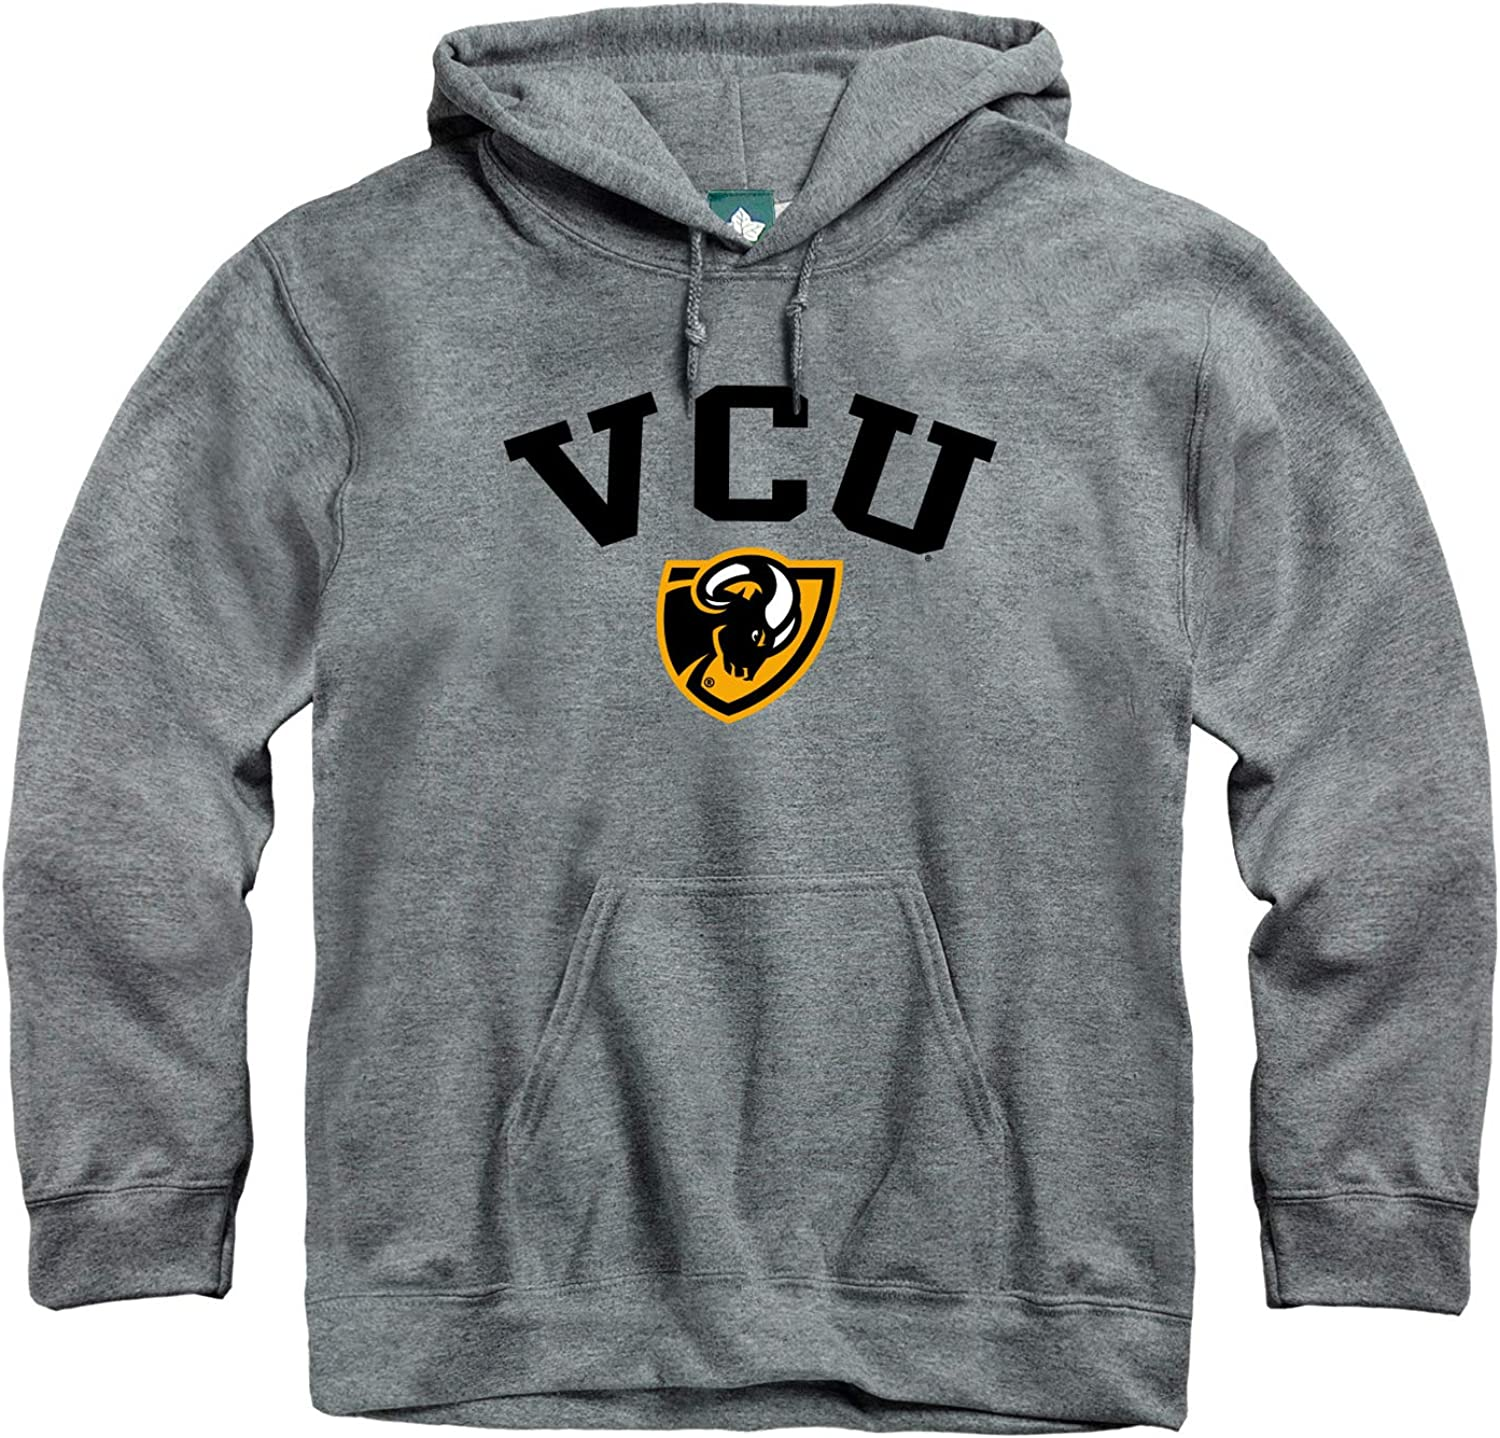 Cotton//Poly Blend NCAA Colleges and Universities Heritage Logo Grey Ivysport Hooded Sweatshirt